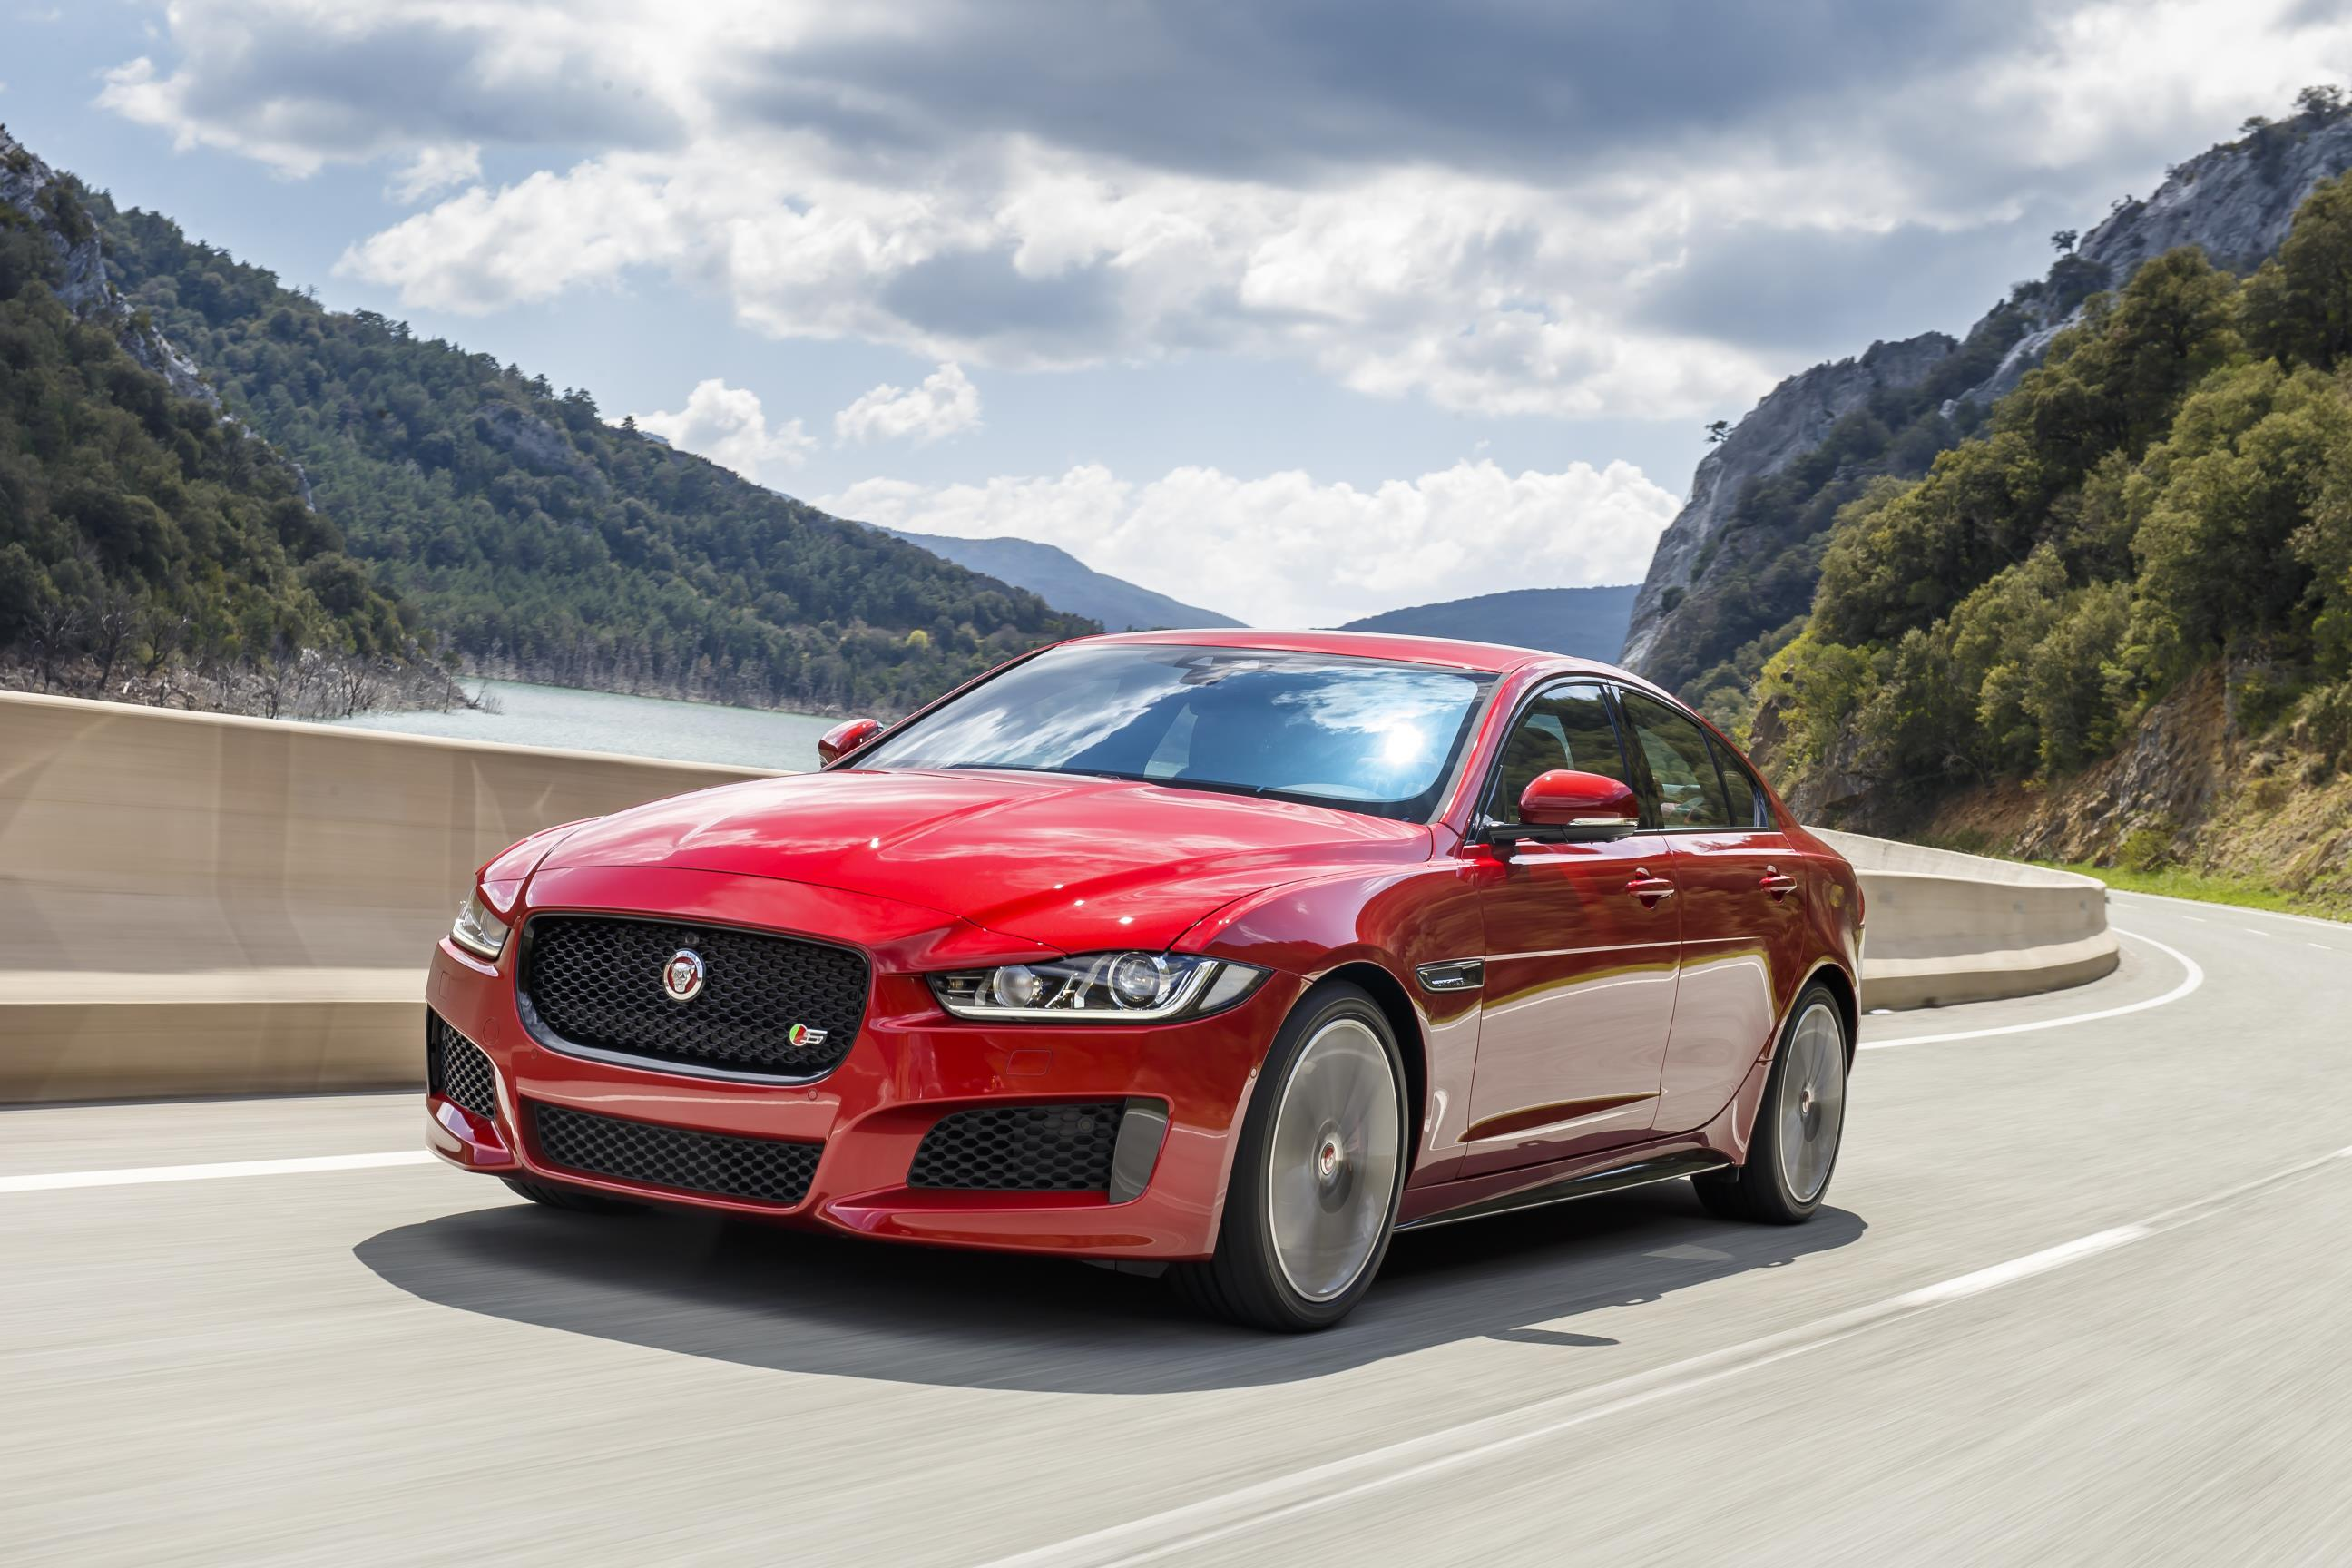 Red Jaguar XE driving towards you on beautiful country road